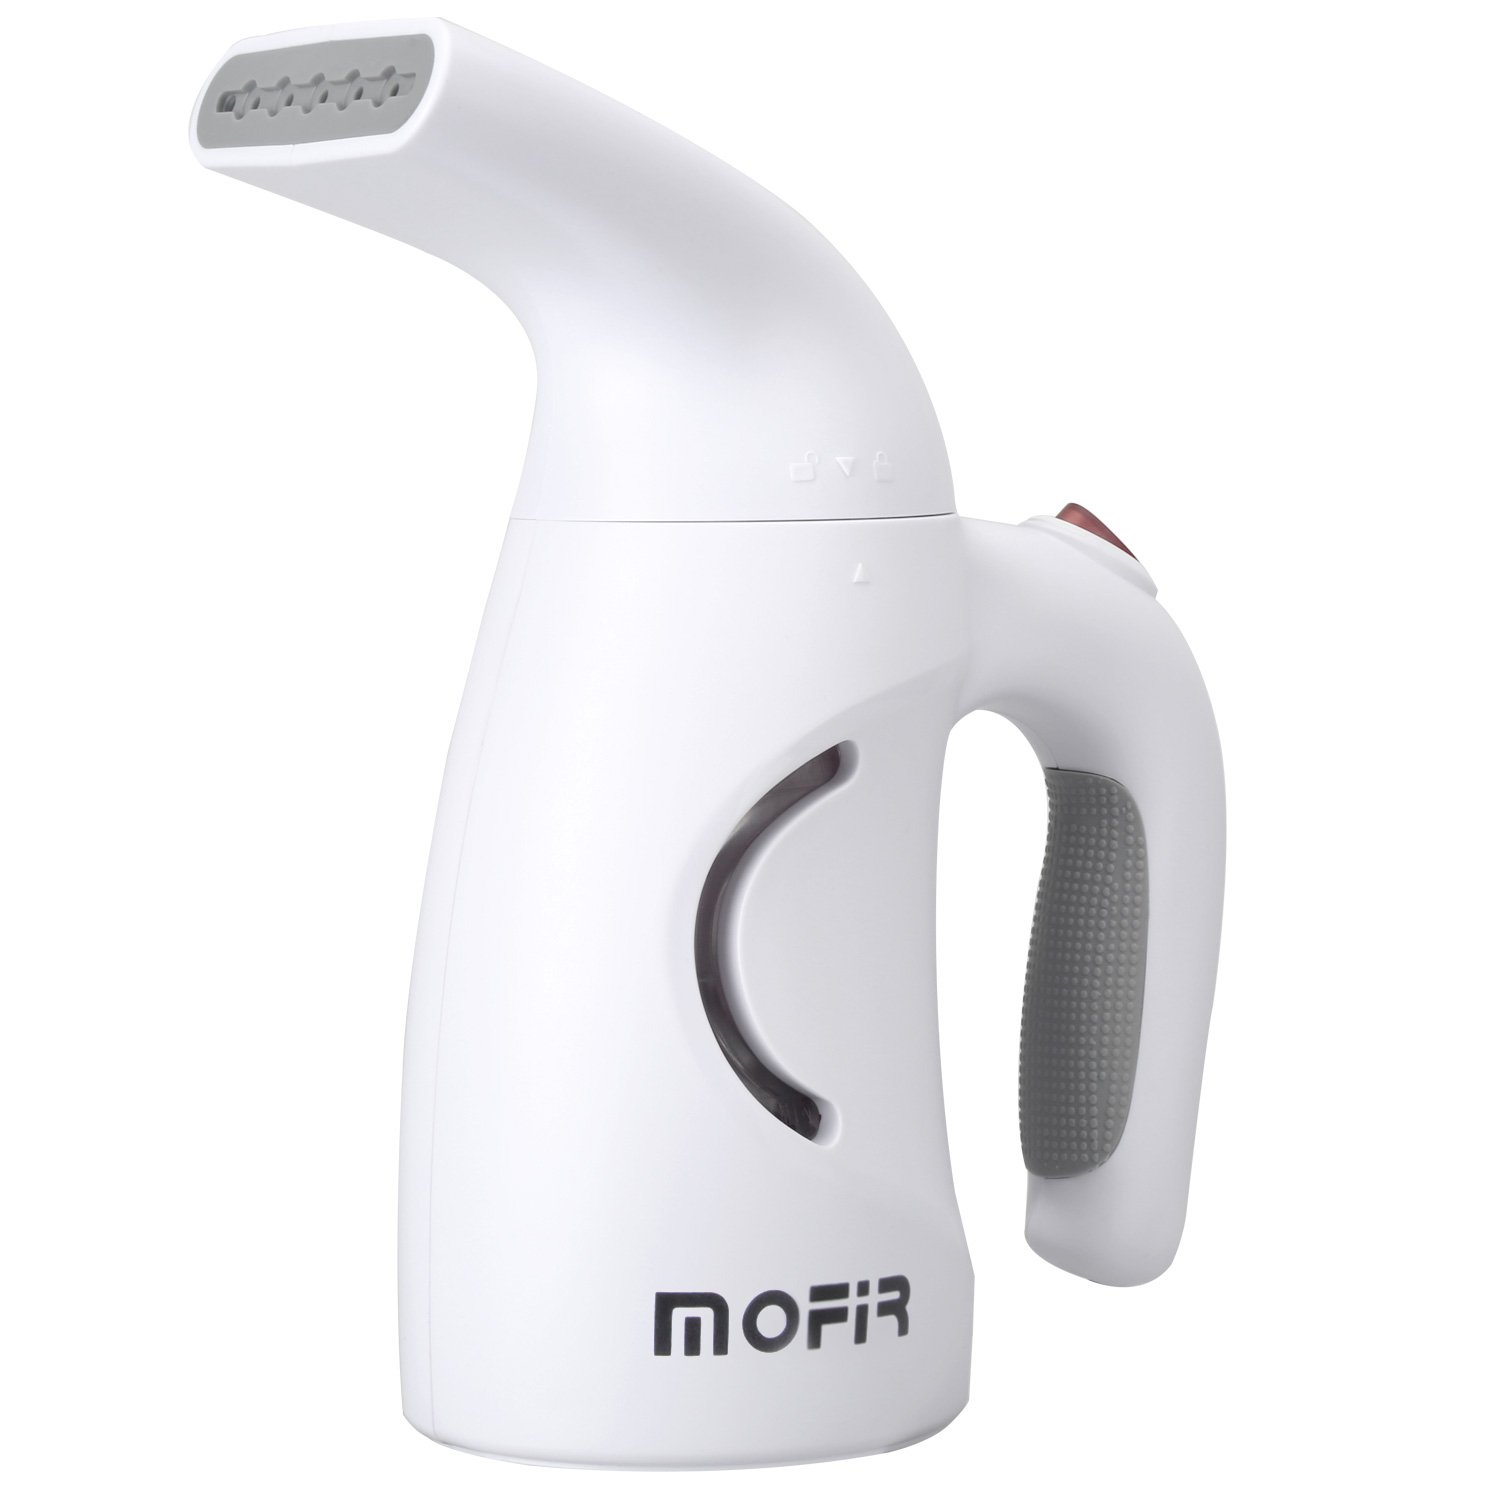 MOFIR Steamer for Clothes, Portable Handheld Clothes Steamer Safety Fabric Steamer Fast-Heat Up Travel Garment Steamers for Home and Travel by MOFIR